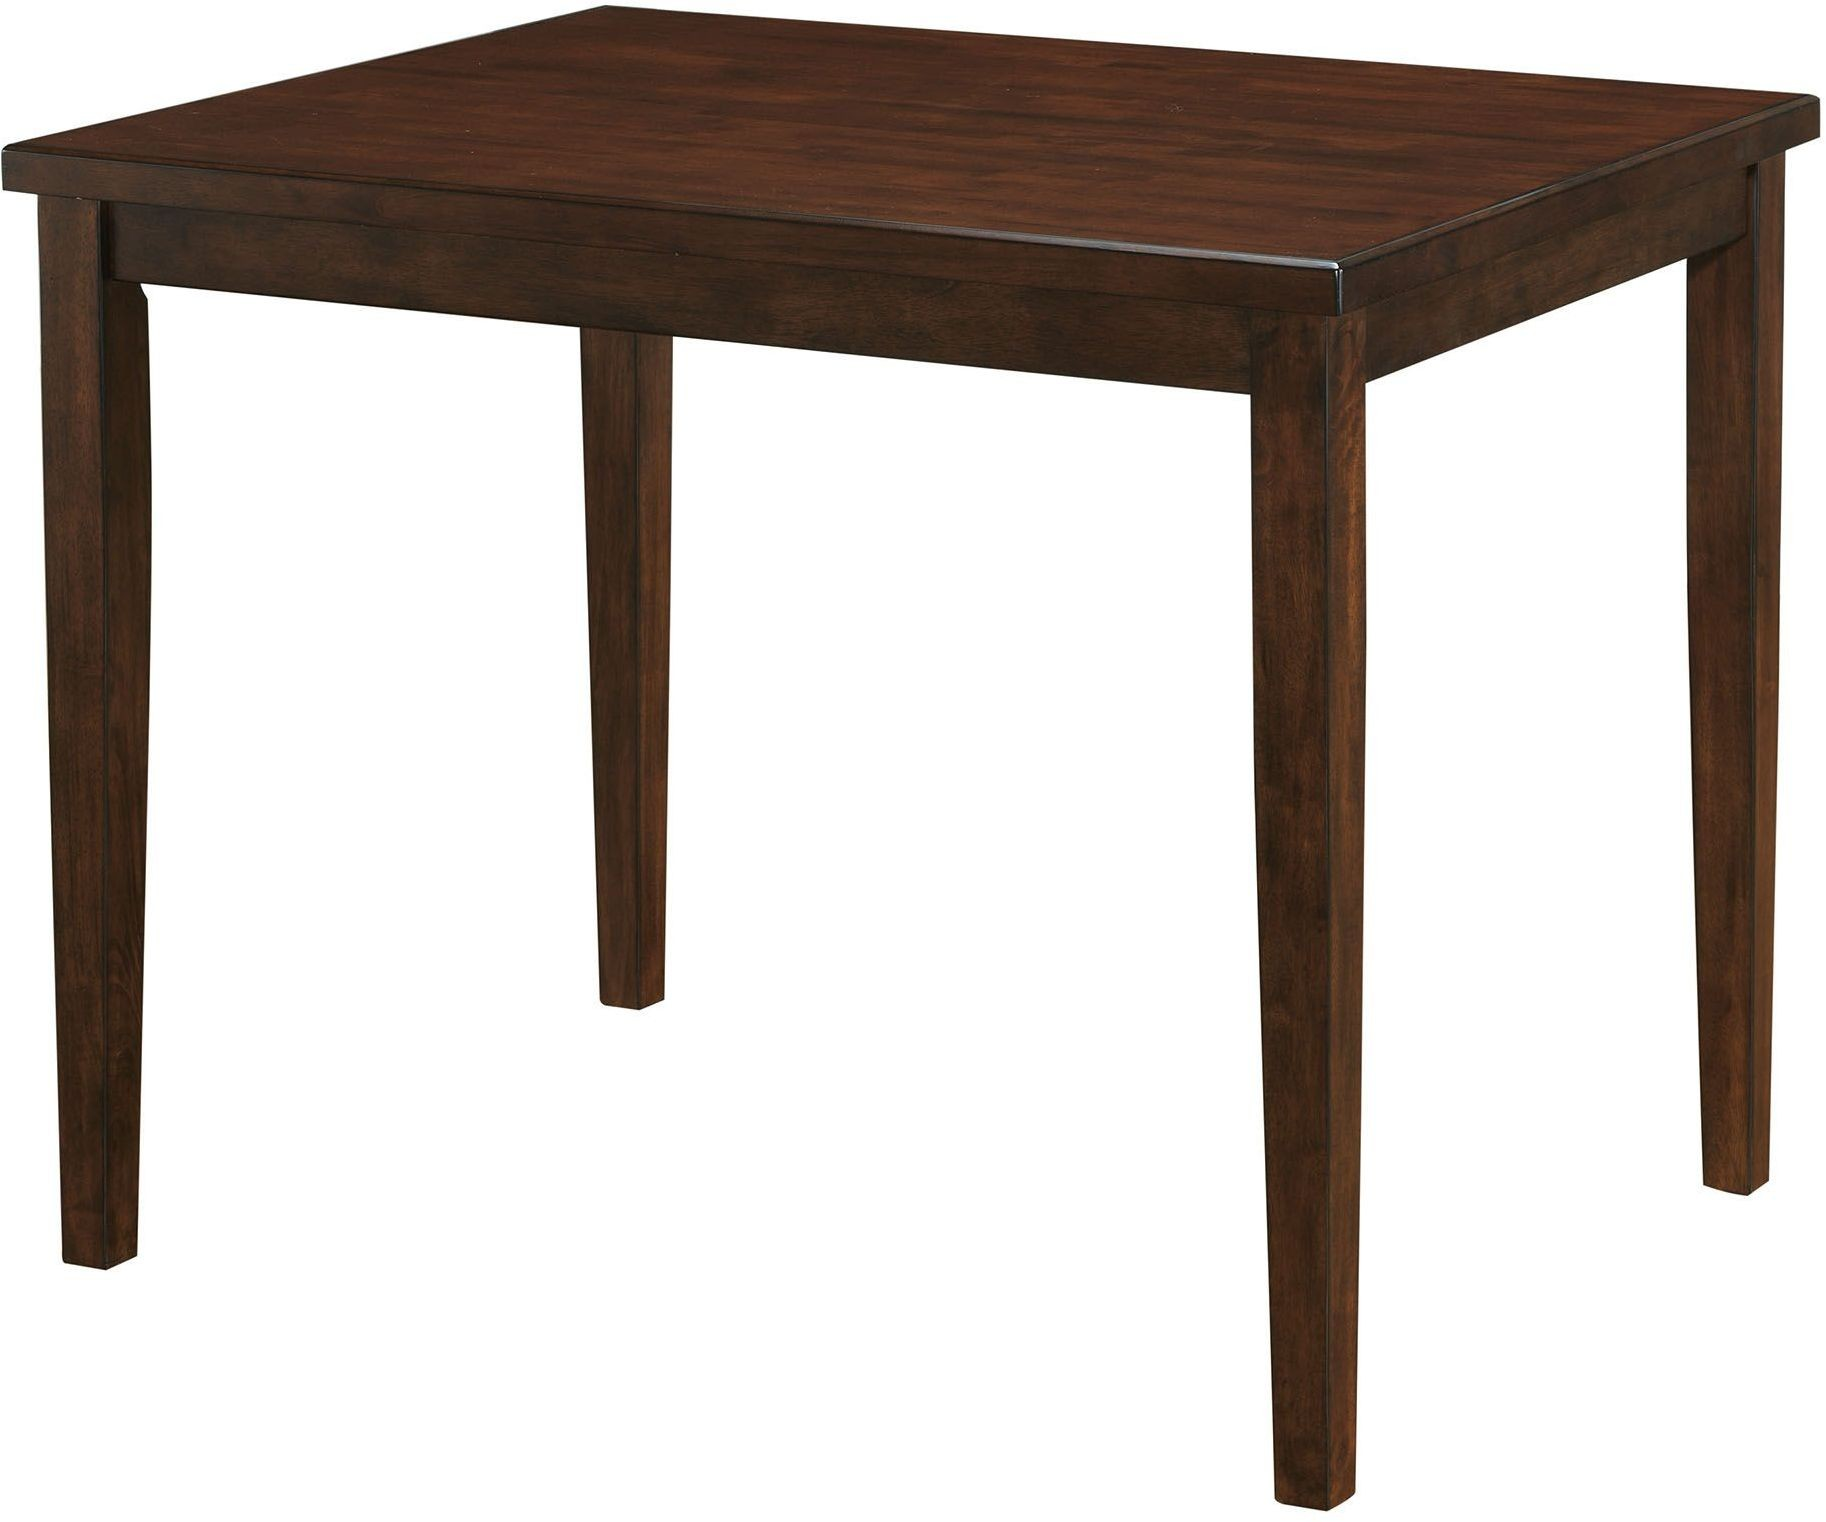 Marten brown cherry square counter height dining table for Cherry dining table